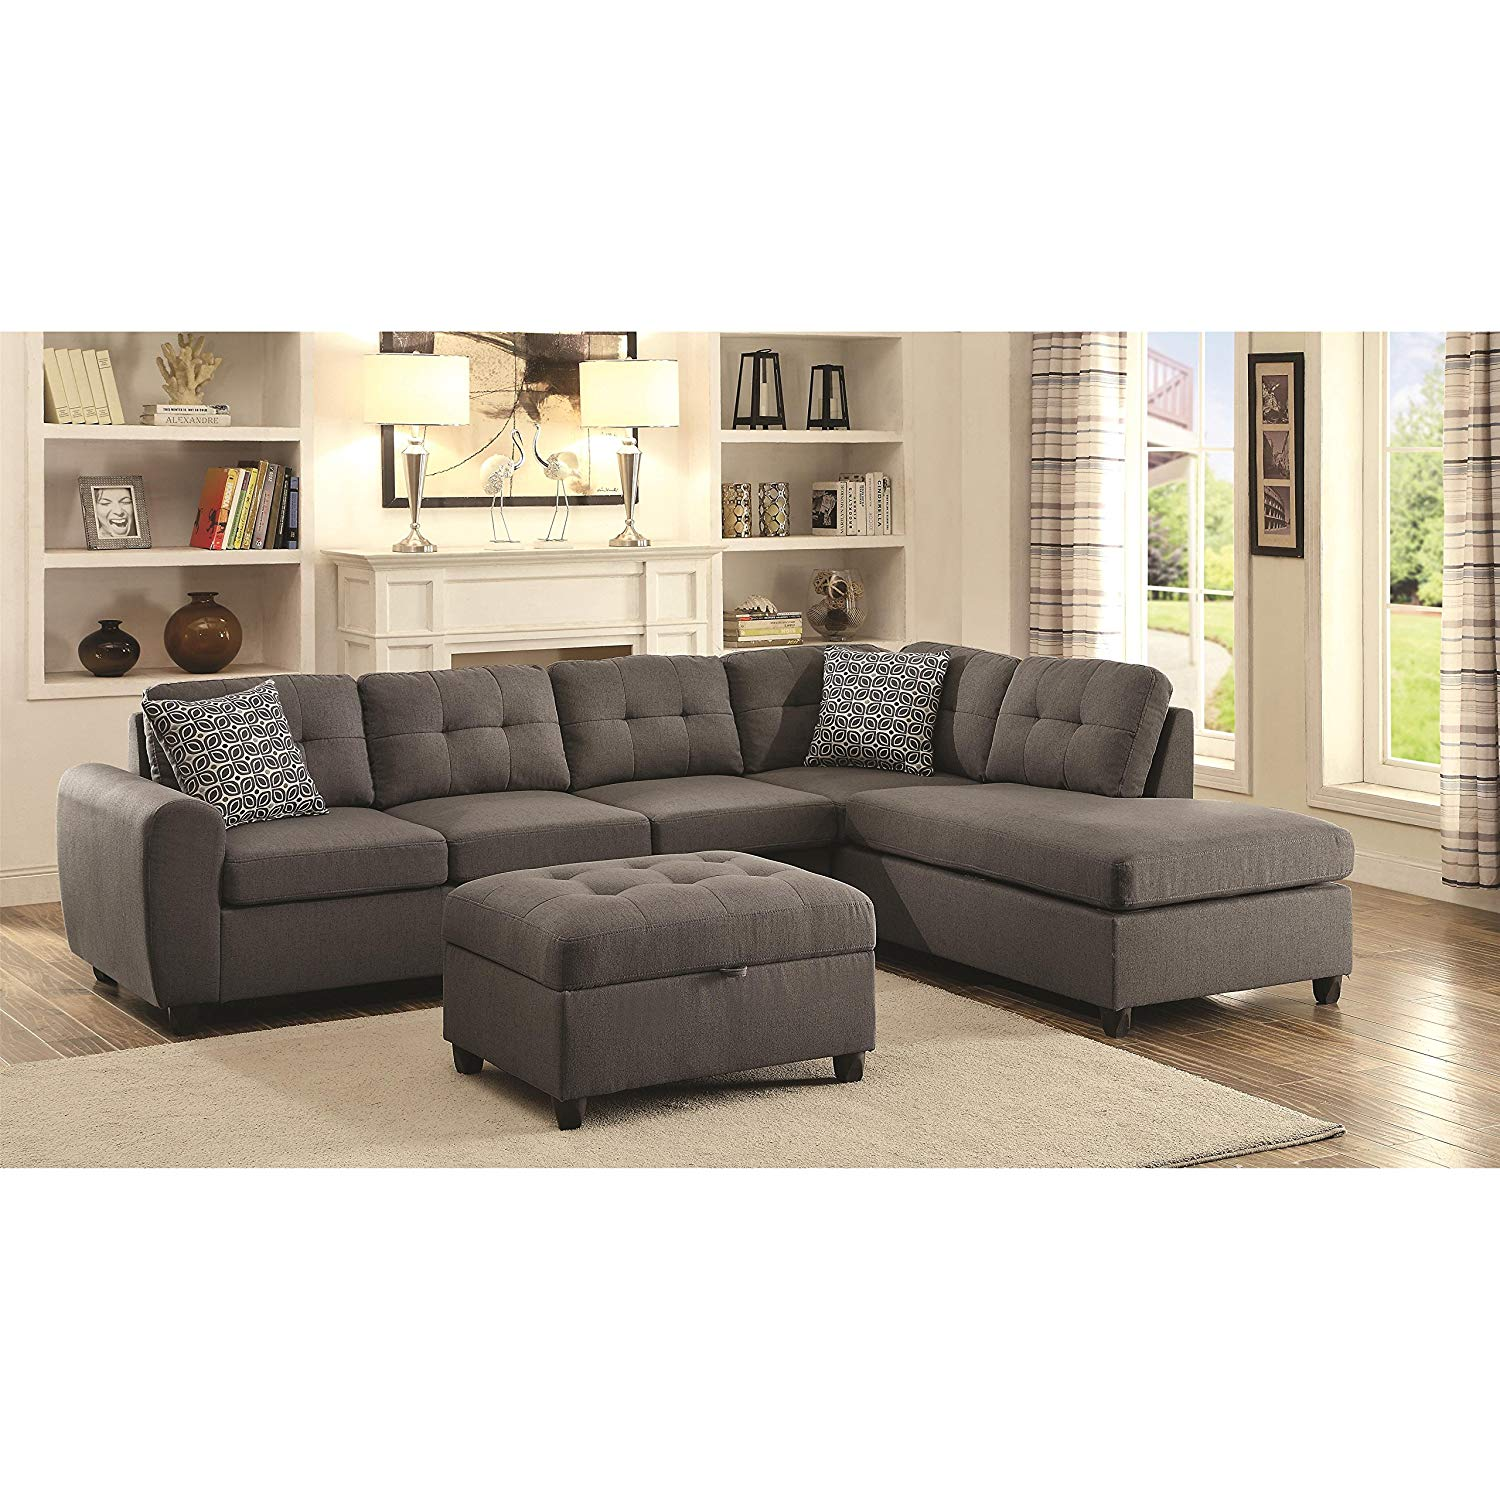 Traveller Location: Coaster Home Furnishings 500413 Living Room Sectional Sofa Grey:  Kitchen & Dining